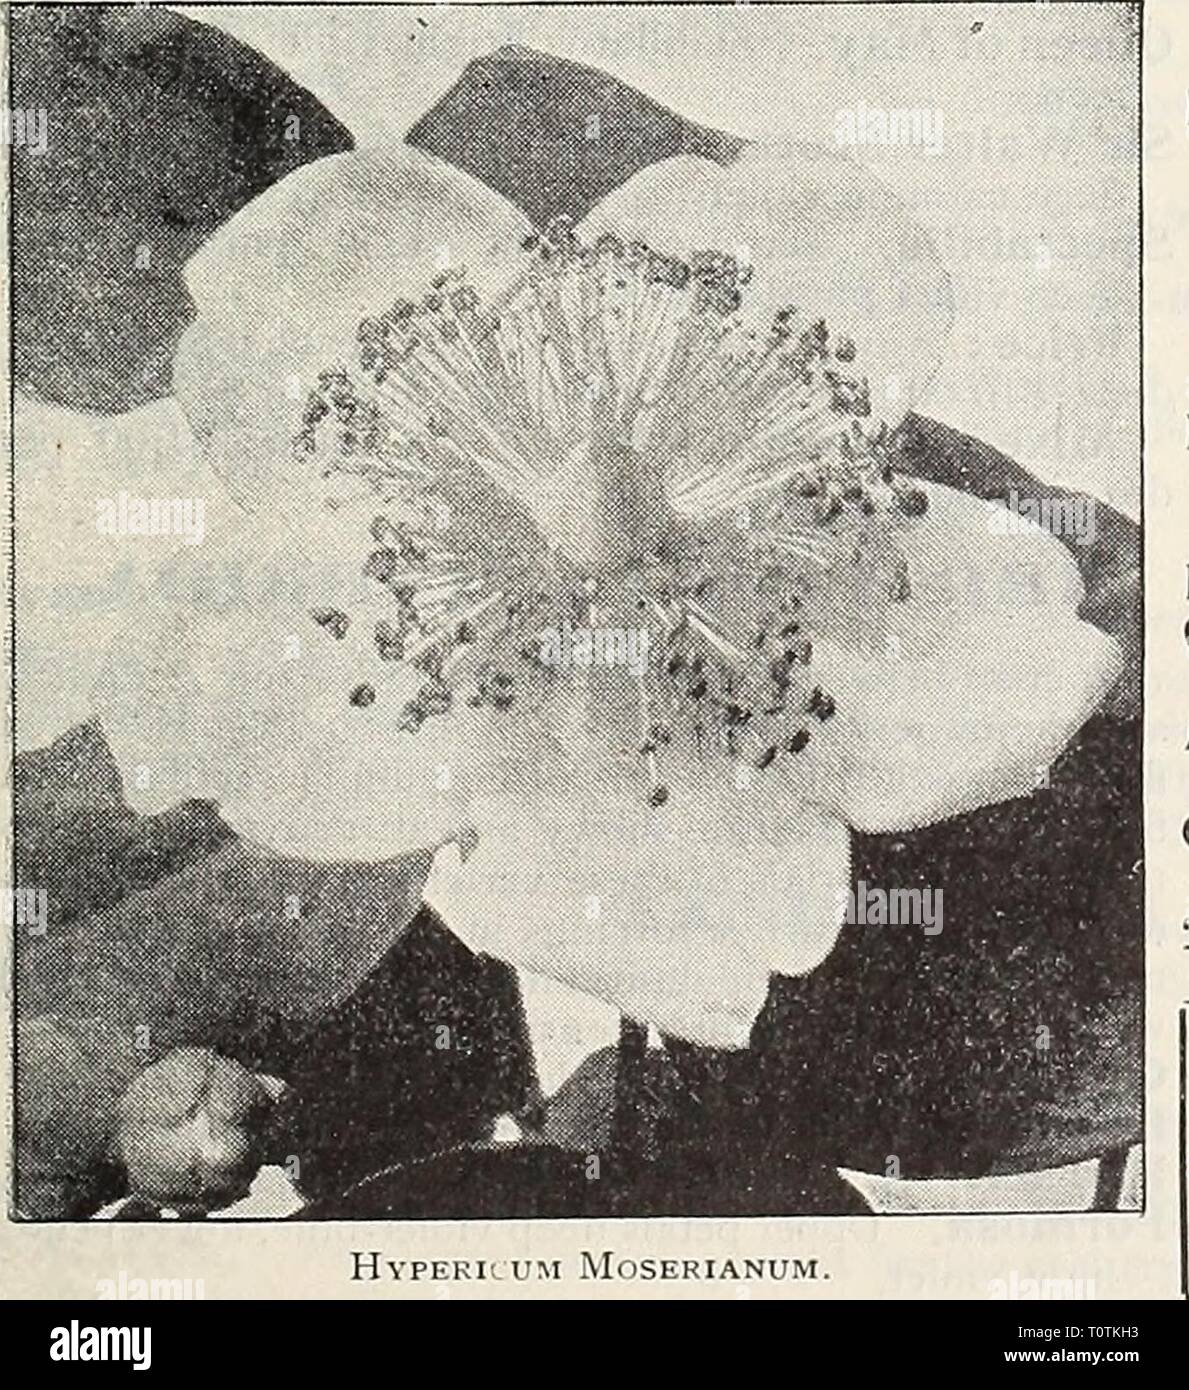 Dreer's 1907 garden book (1907) Dreer's 1907 garden book  dreers1907garden1907henr Year: 1907  Hollyhocks.    LNCARVIILXBA (Hardy Gloxinia). Delavayi. A new hardy tuberous-rooted plant, and one of the choicest perennial plants introduced in recent years. It produces large, gloxinia- like rose-colored flowers, which last in perfection a long time; these are produced in cluste. on stems 18 inches high ; should be protected with a covering of leaves during the winter. 25 cts each ; $2.50 per doz. INULA (Flea Bane). Britannica. A vigorous-growing variety, about 2 feet high ; producing from July to - Stock Image